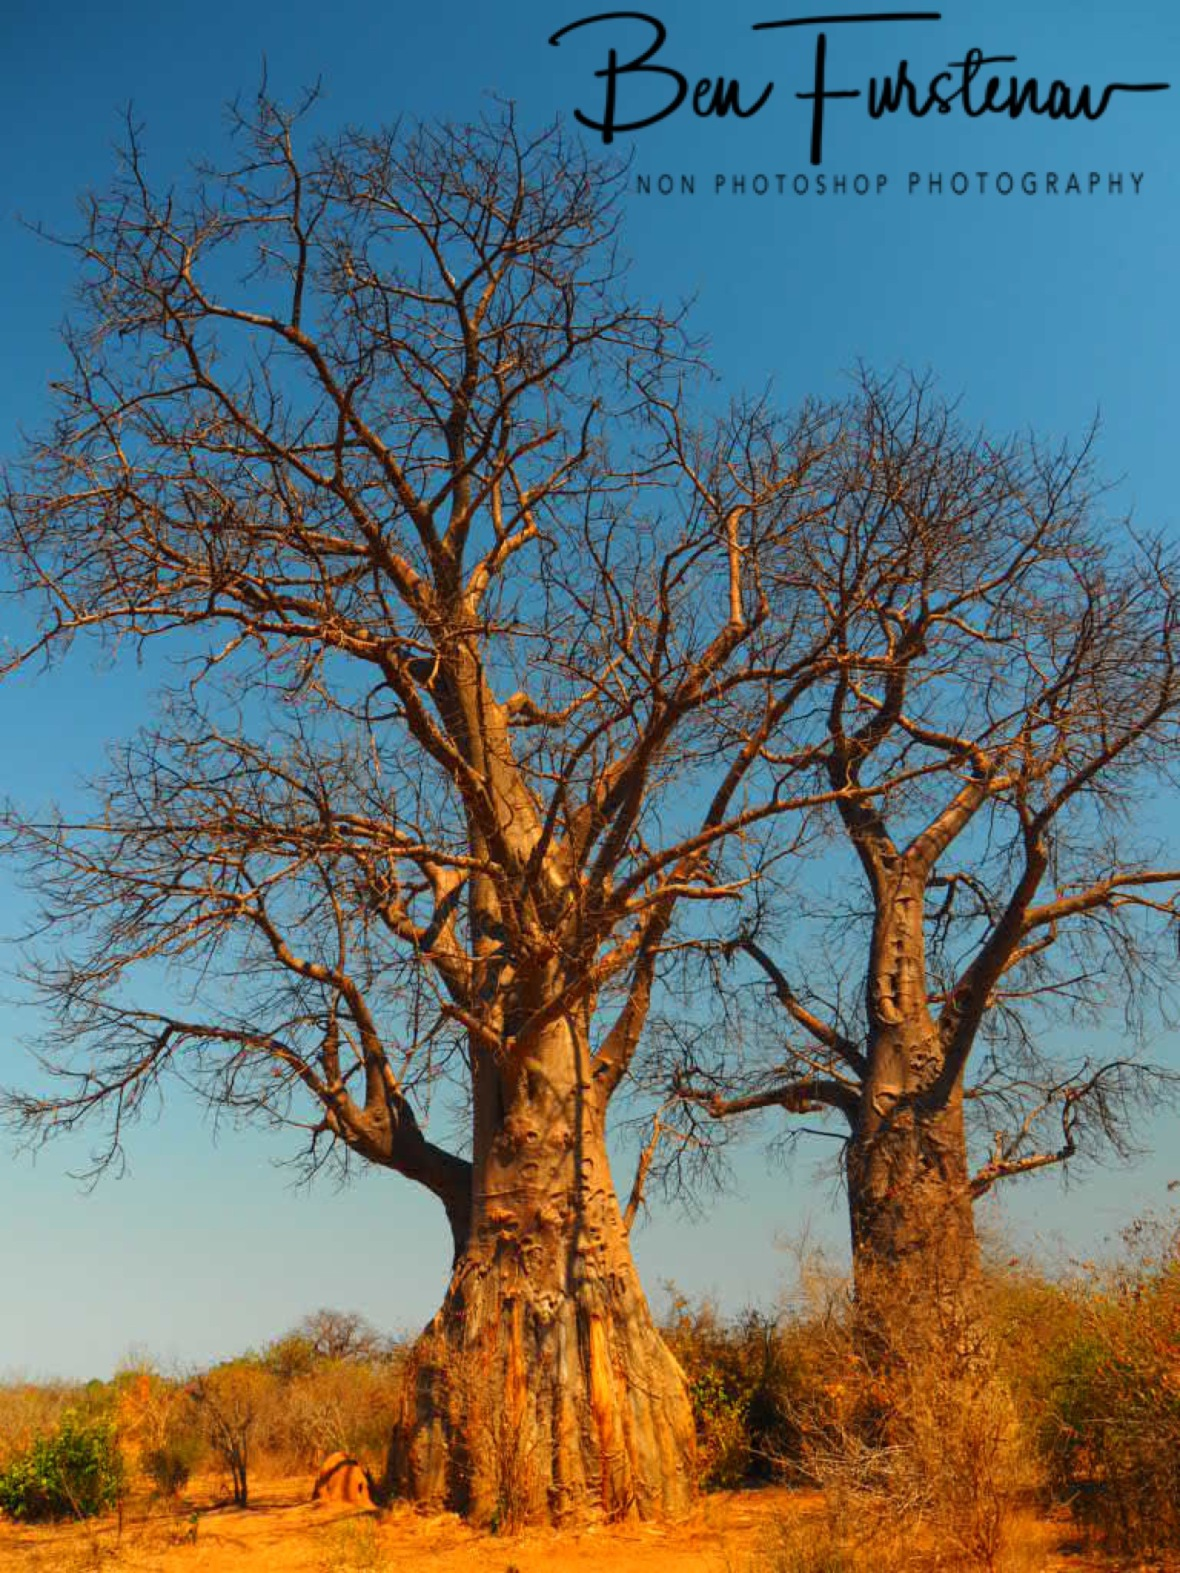 Baobab giants on red soil, Lower Zambezi National Park, Zambia